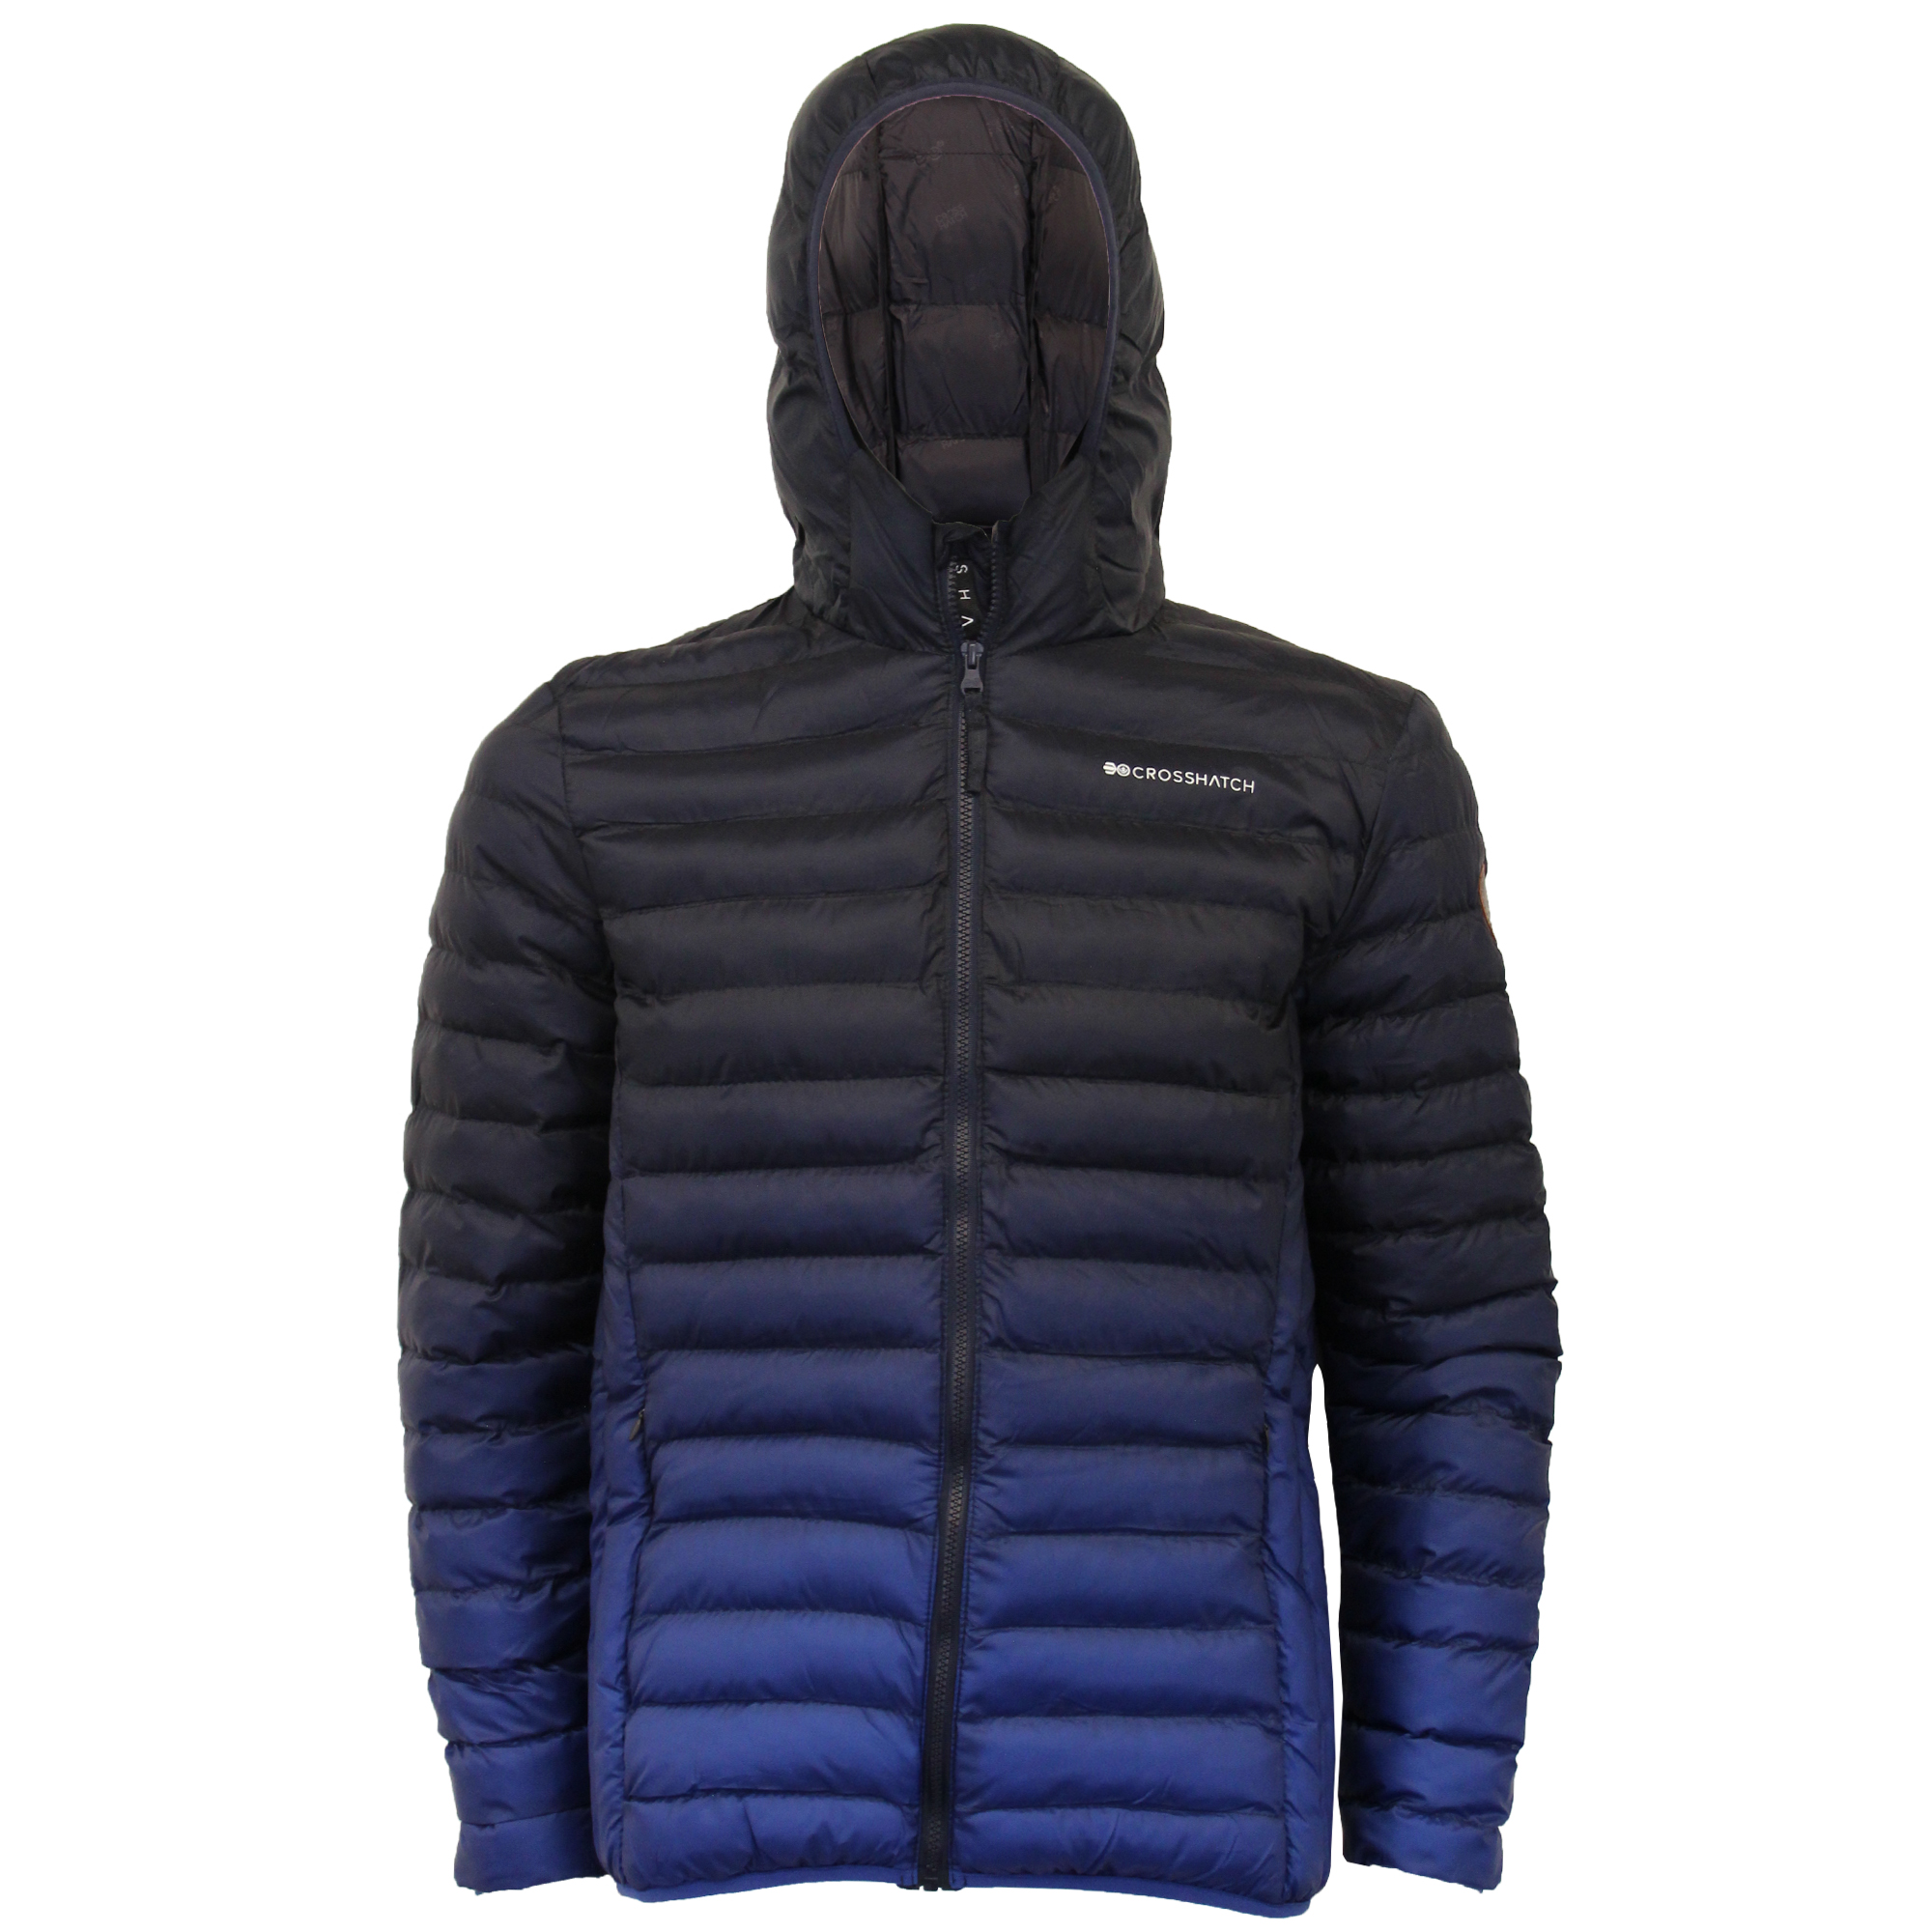 Mens-Jacket-Crosshatch-Hooded-Padded-Quilted-Two-Tone-FADEDOWN-Lined-Winter-New thumbnail 16